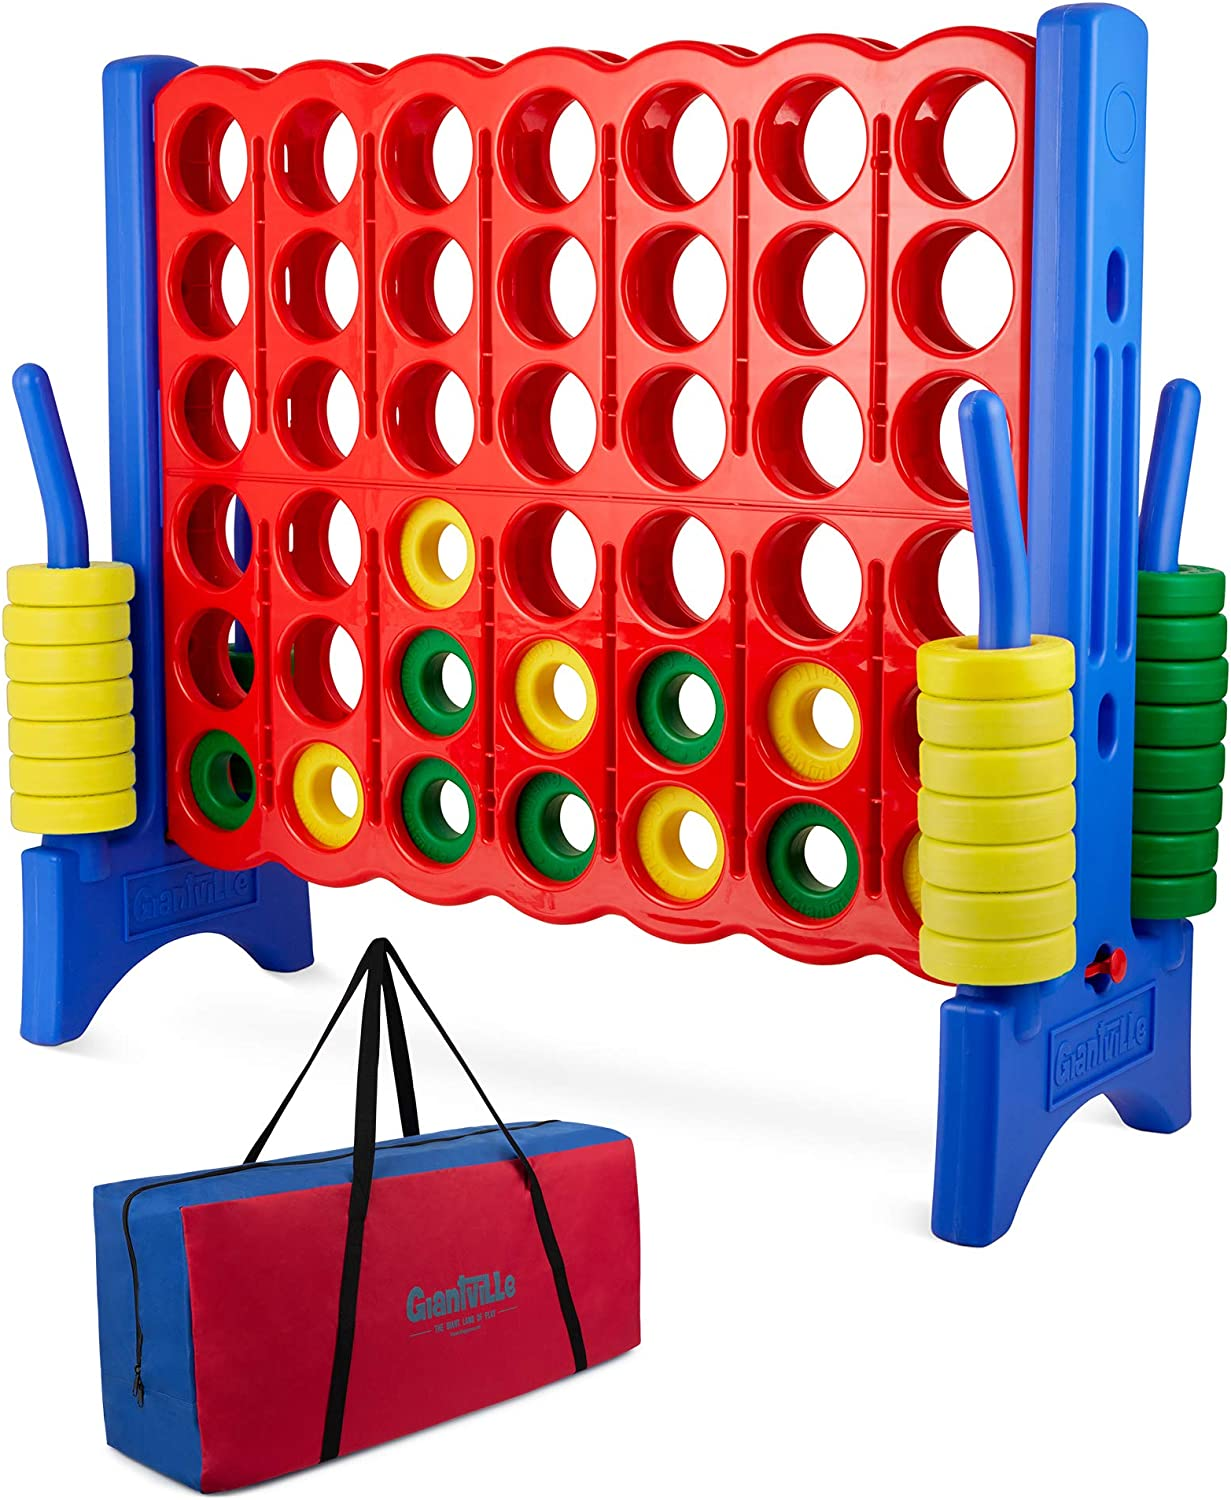 Giant 4 in a Row Connect Game – 4 Feet Wide by 3.5 Feet Tall